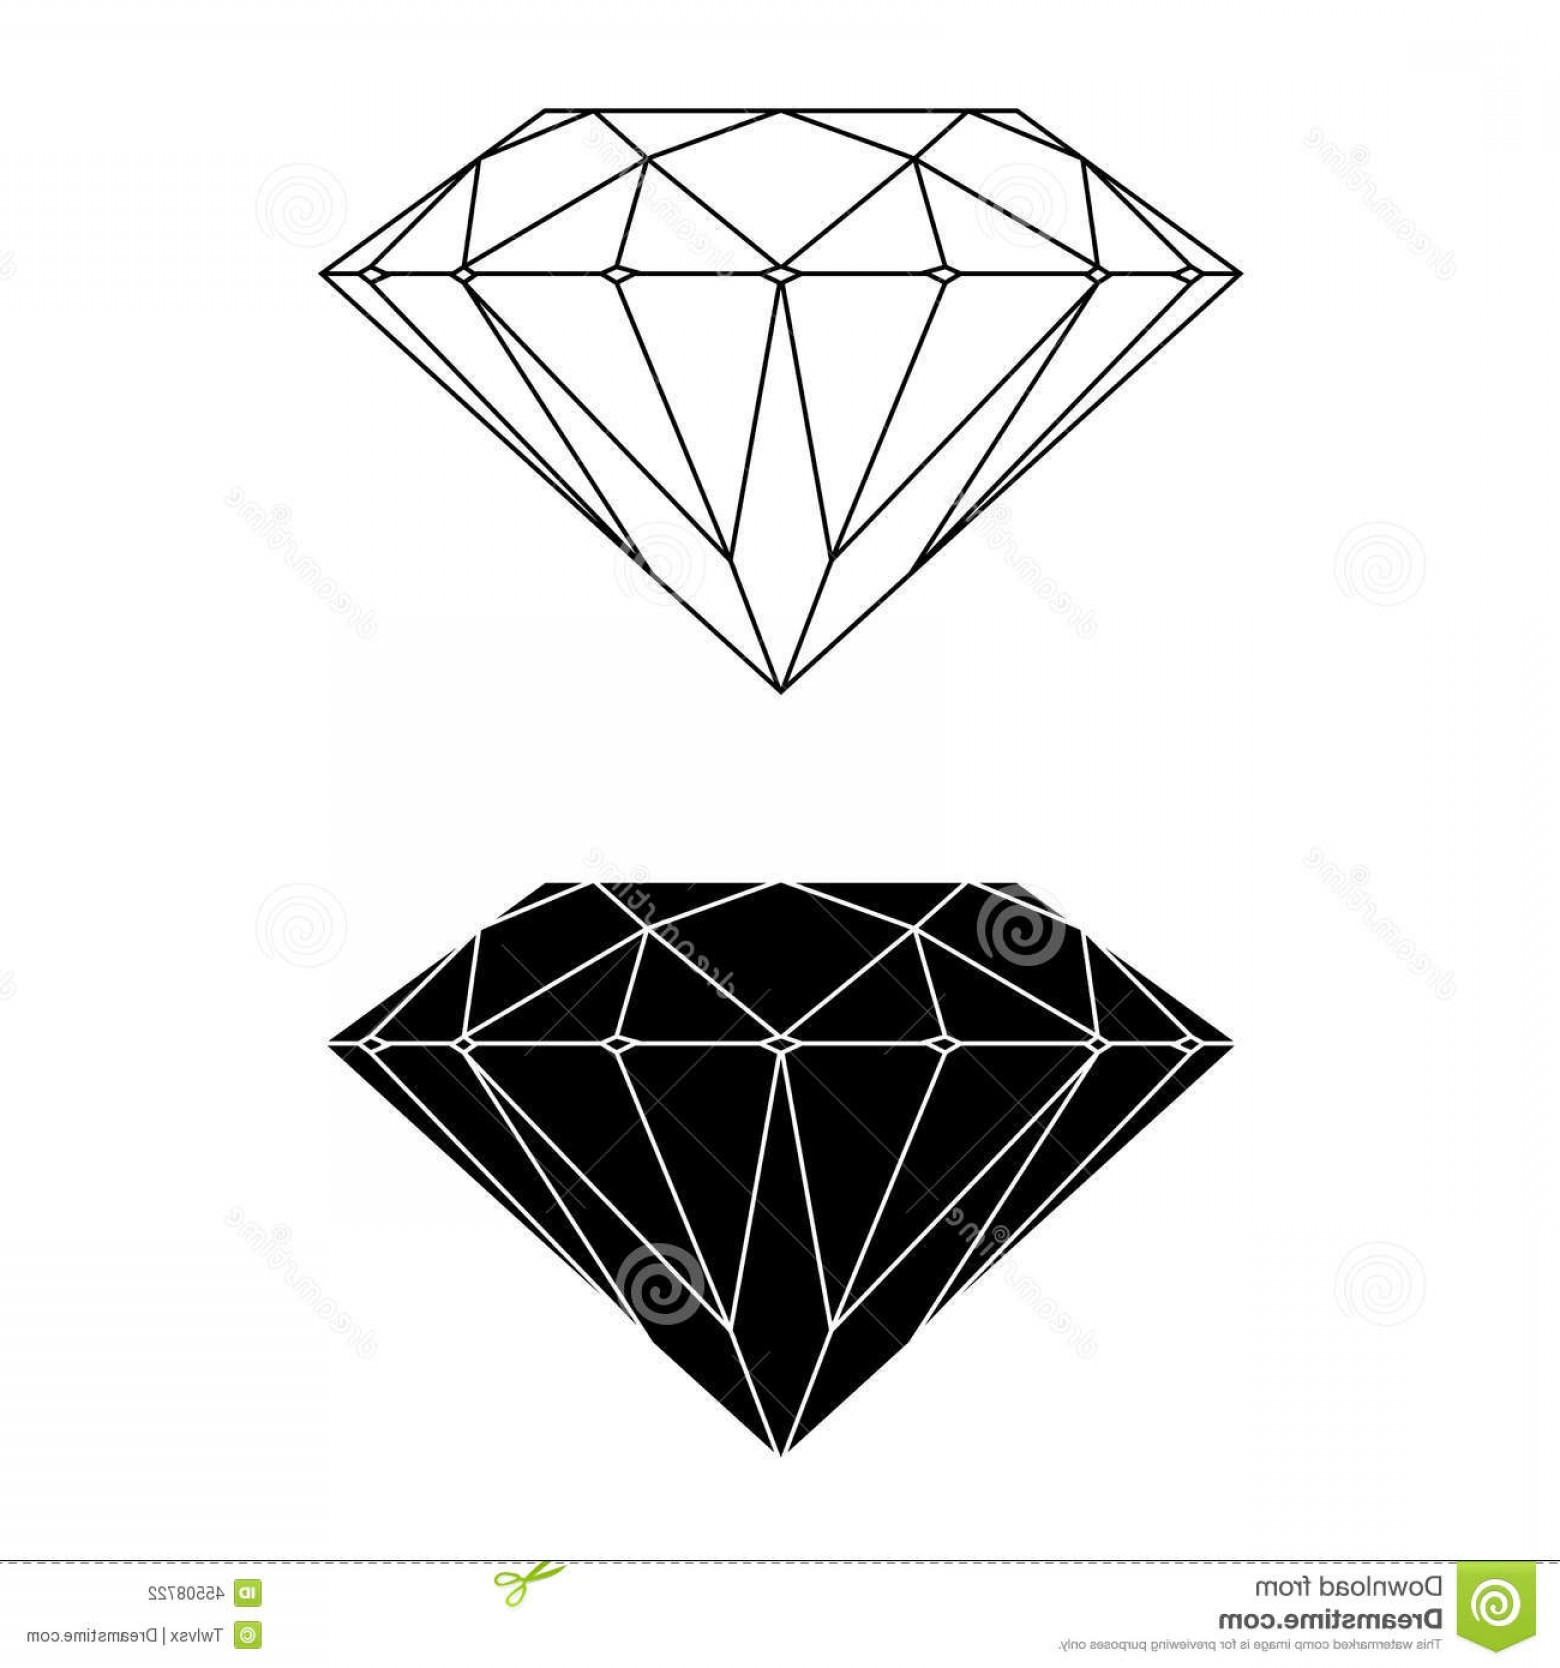 Black Diamond Vector Clip Art: Stock Illustration Diamond Vector Silhouette Simple Outline Image